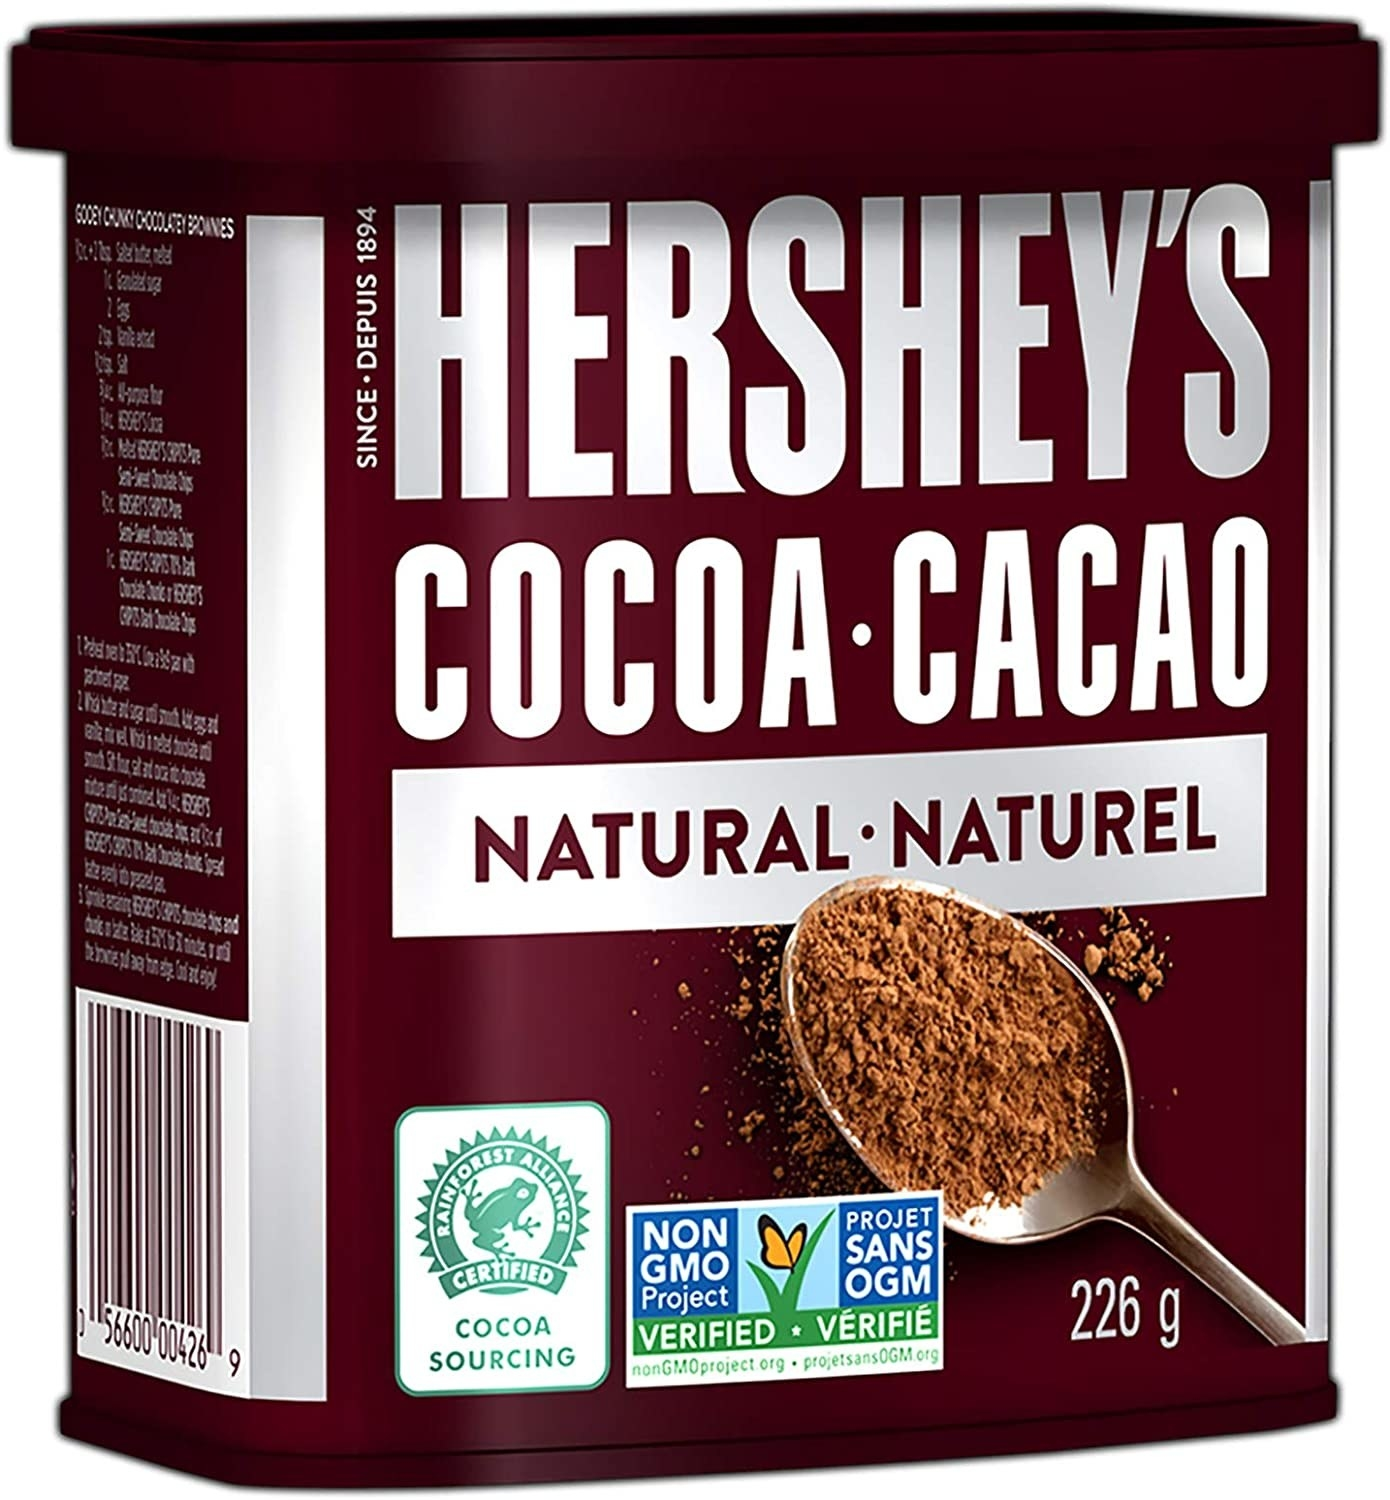 A container of cocoa powder